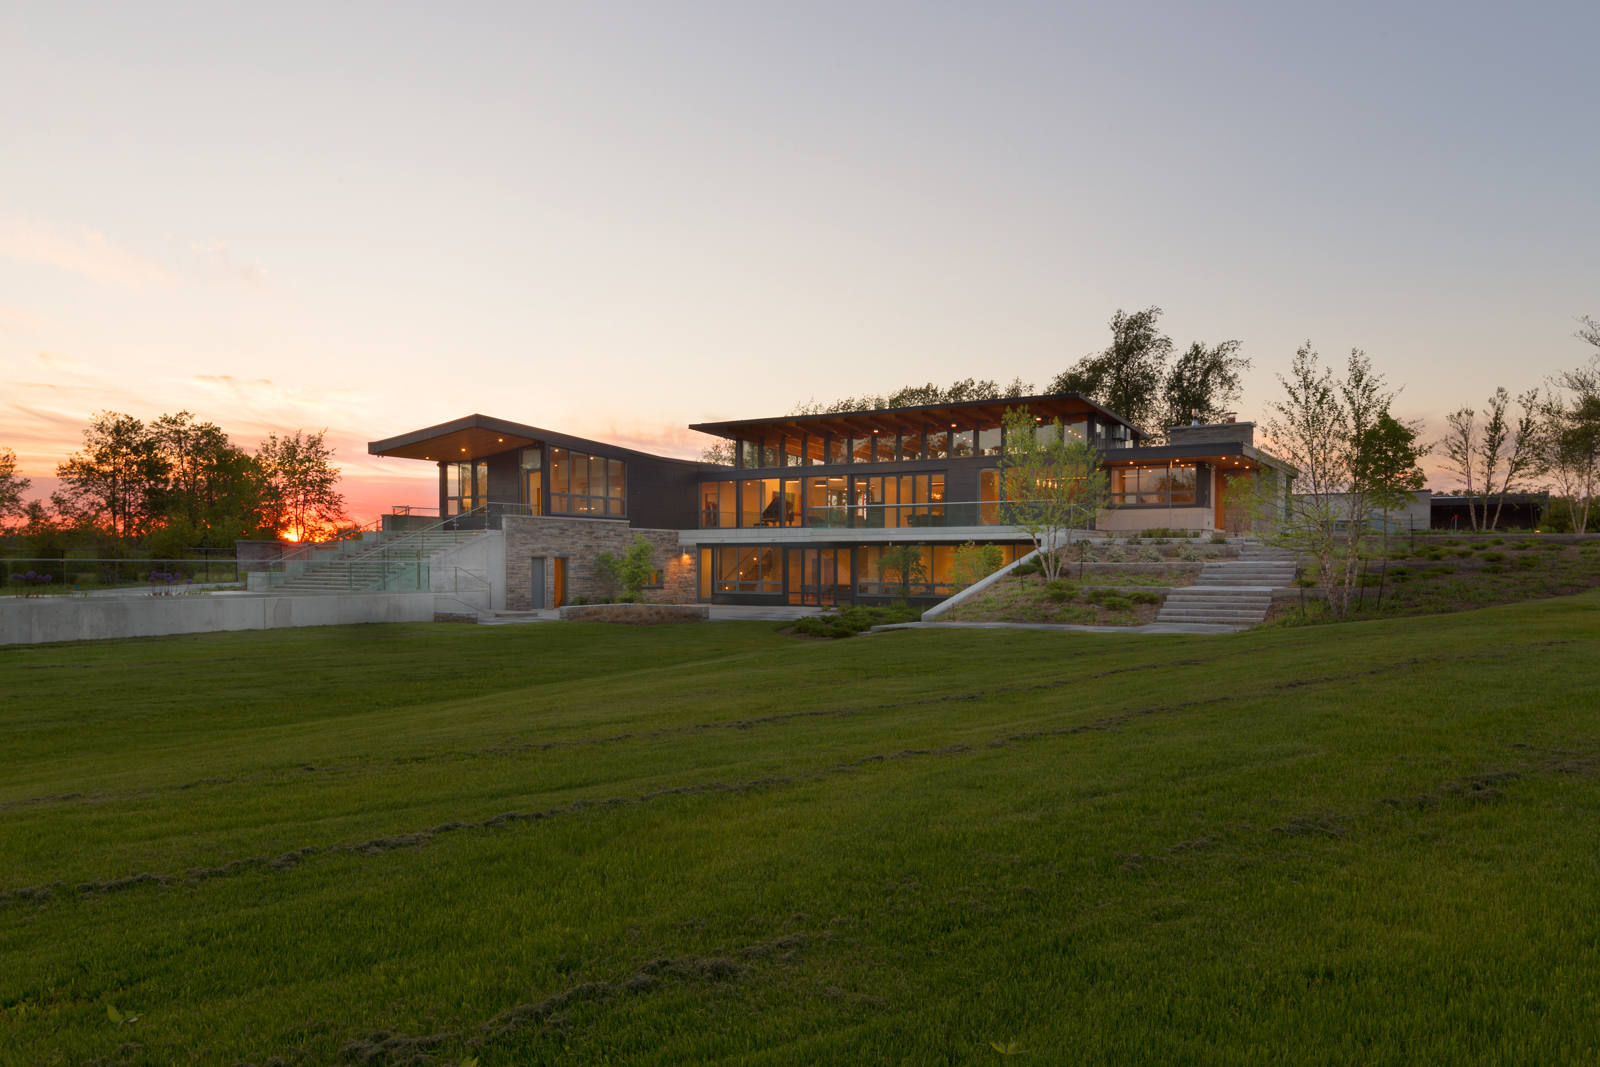 Gallery of millgrove house toms mcnally design 22 for Design house architecture hamilton